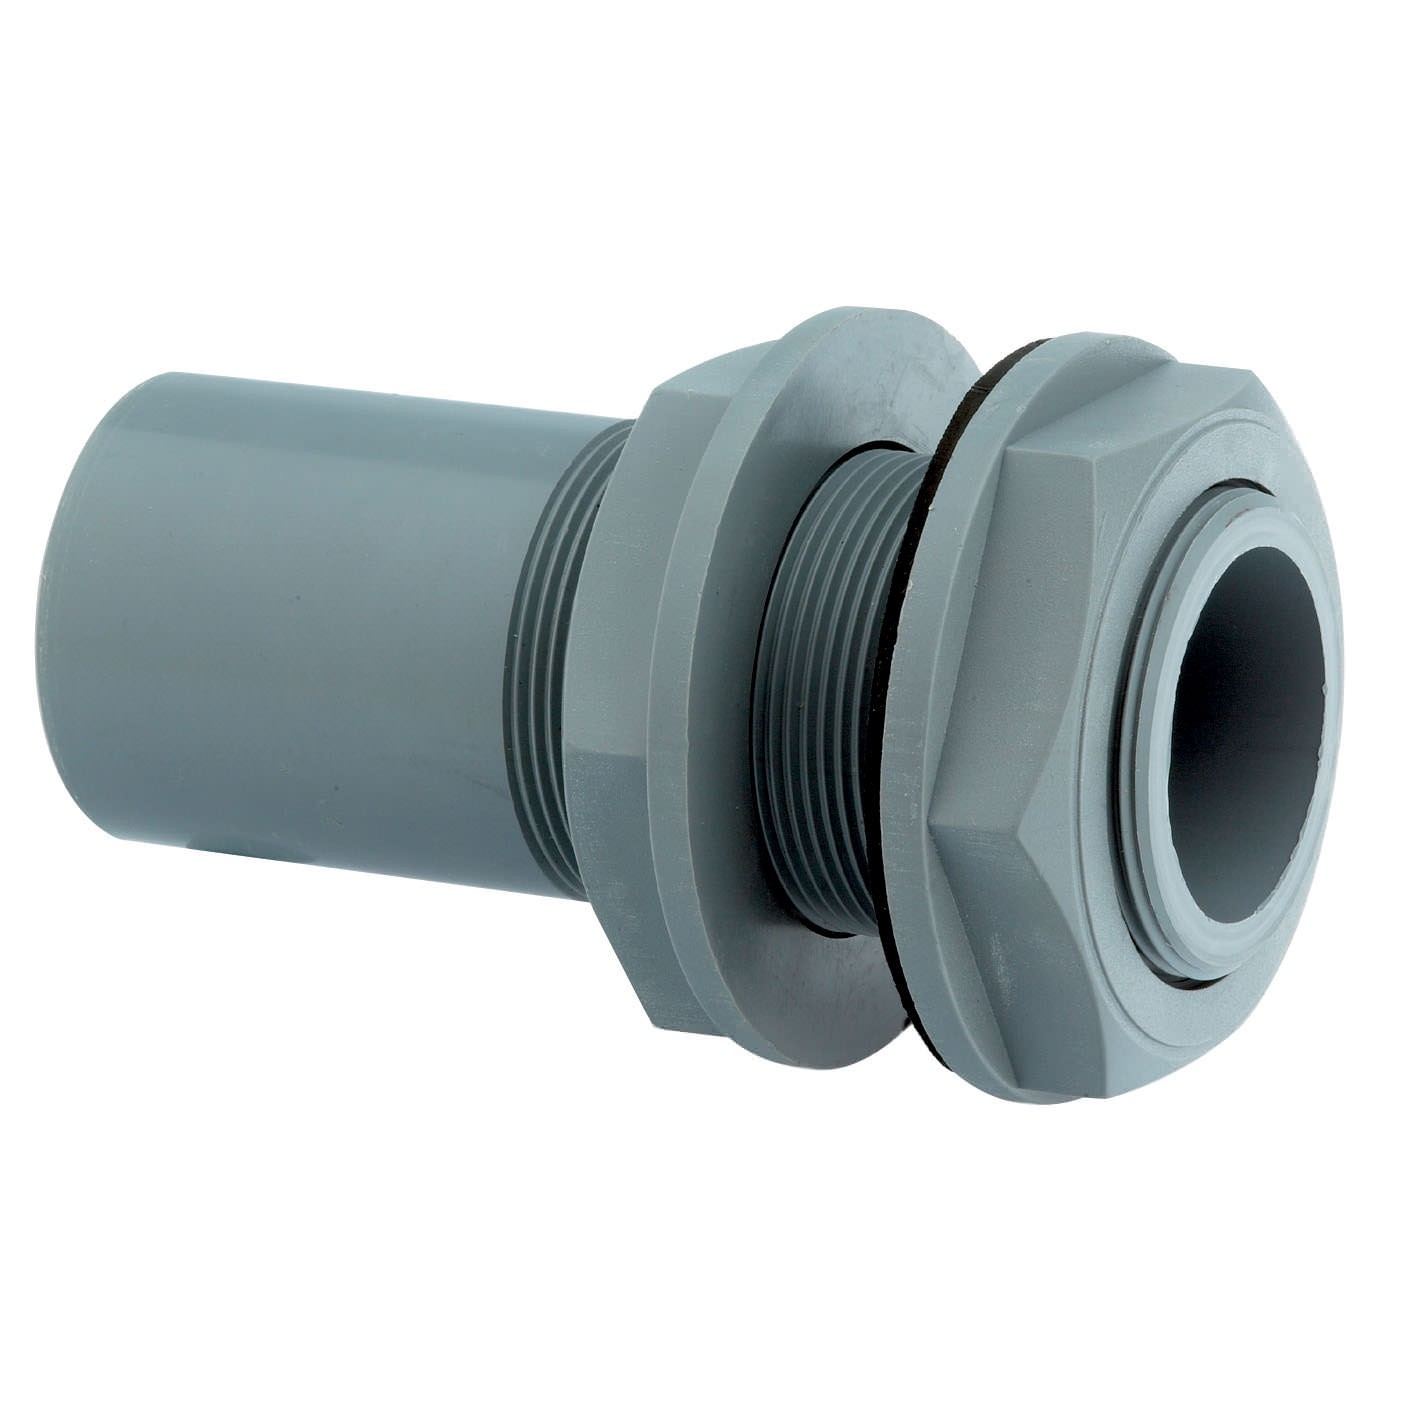 Abs Pipes Are Typically Black While Pvc Is Usually White Or Cream Colored Aside From This It S Hard To Recognize Any Other Distinctions Between The Two